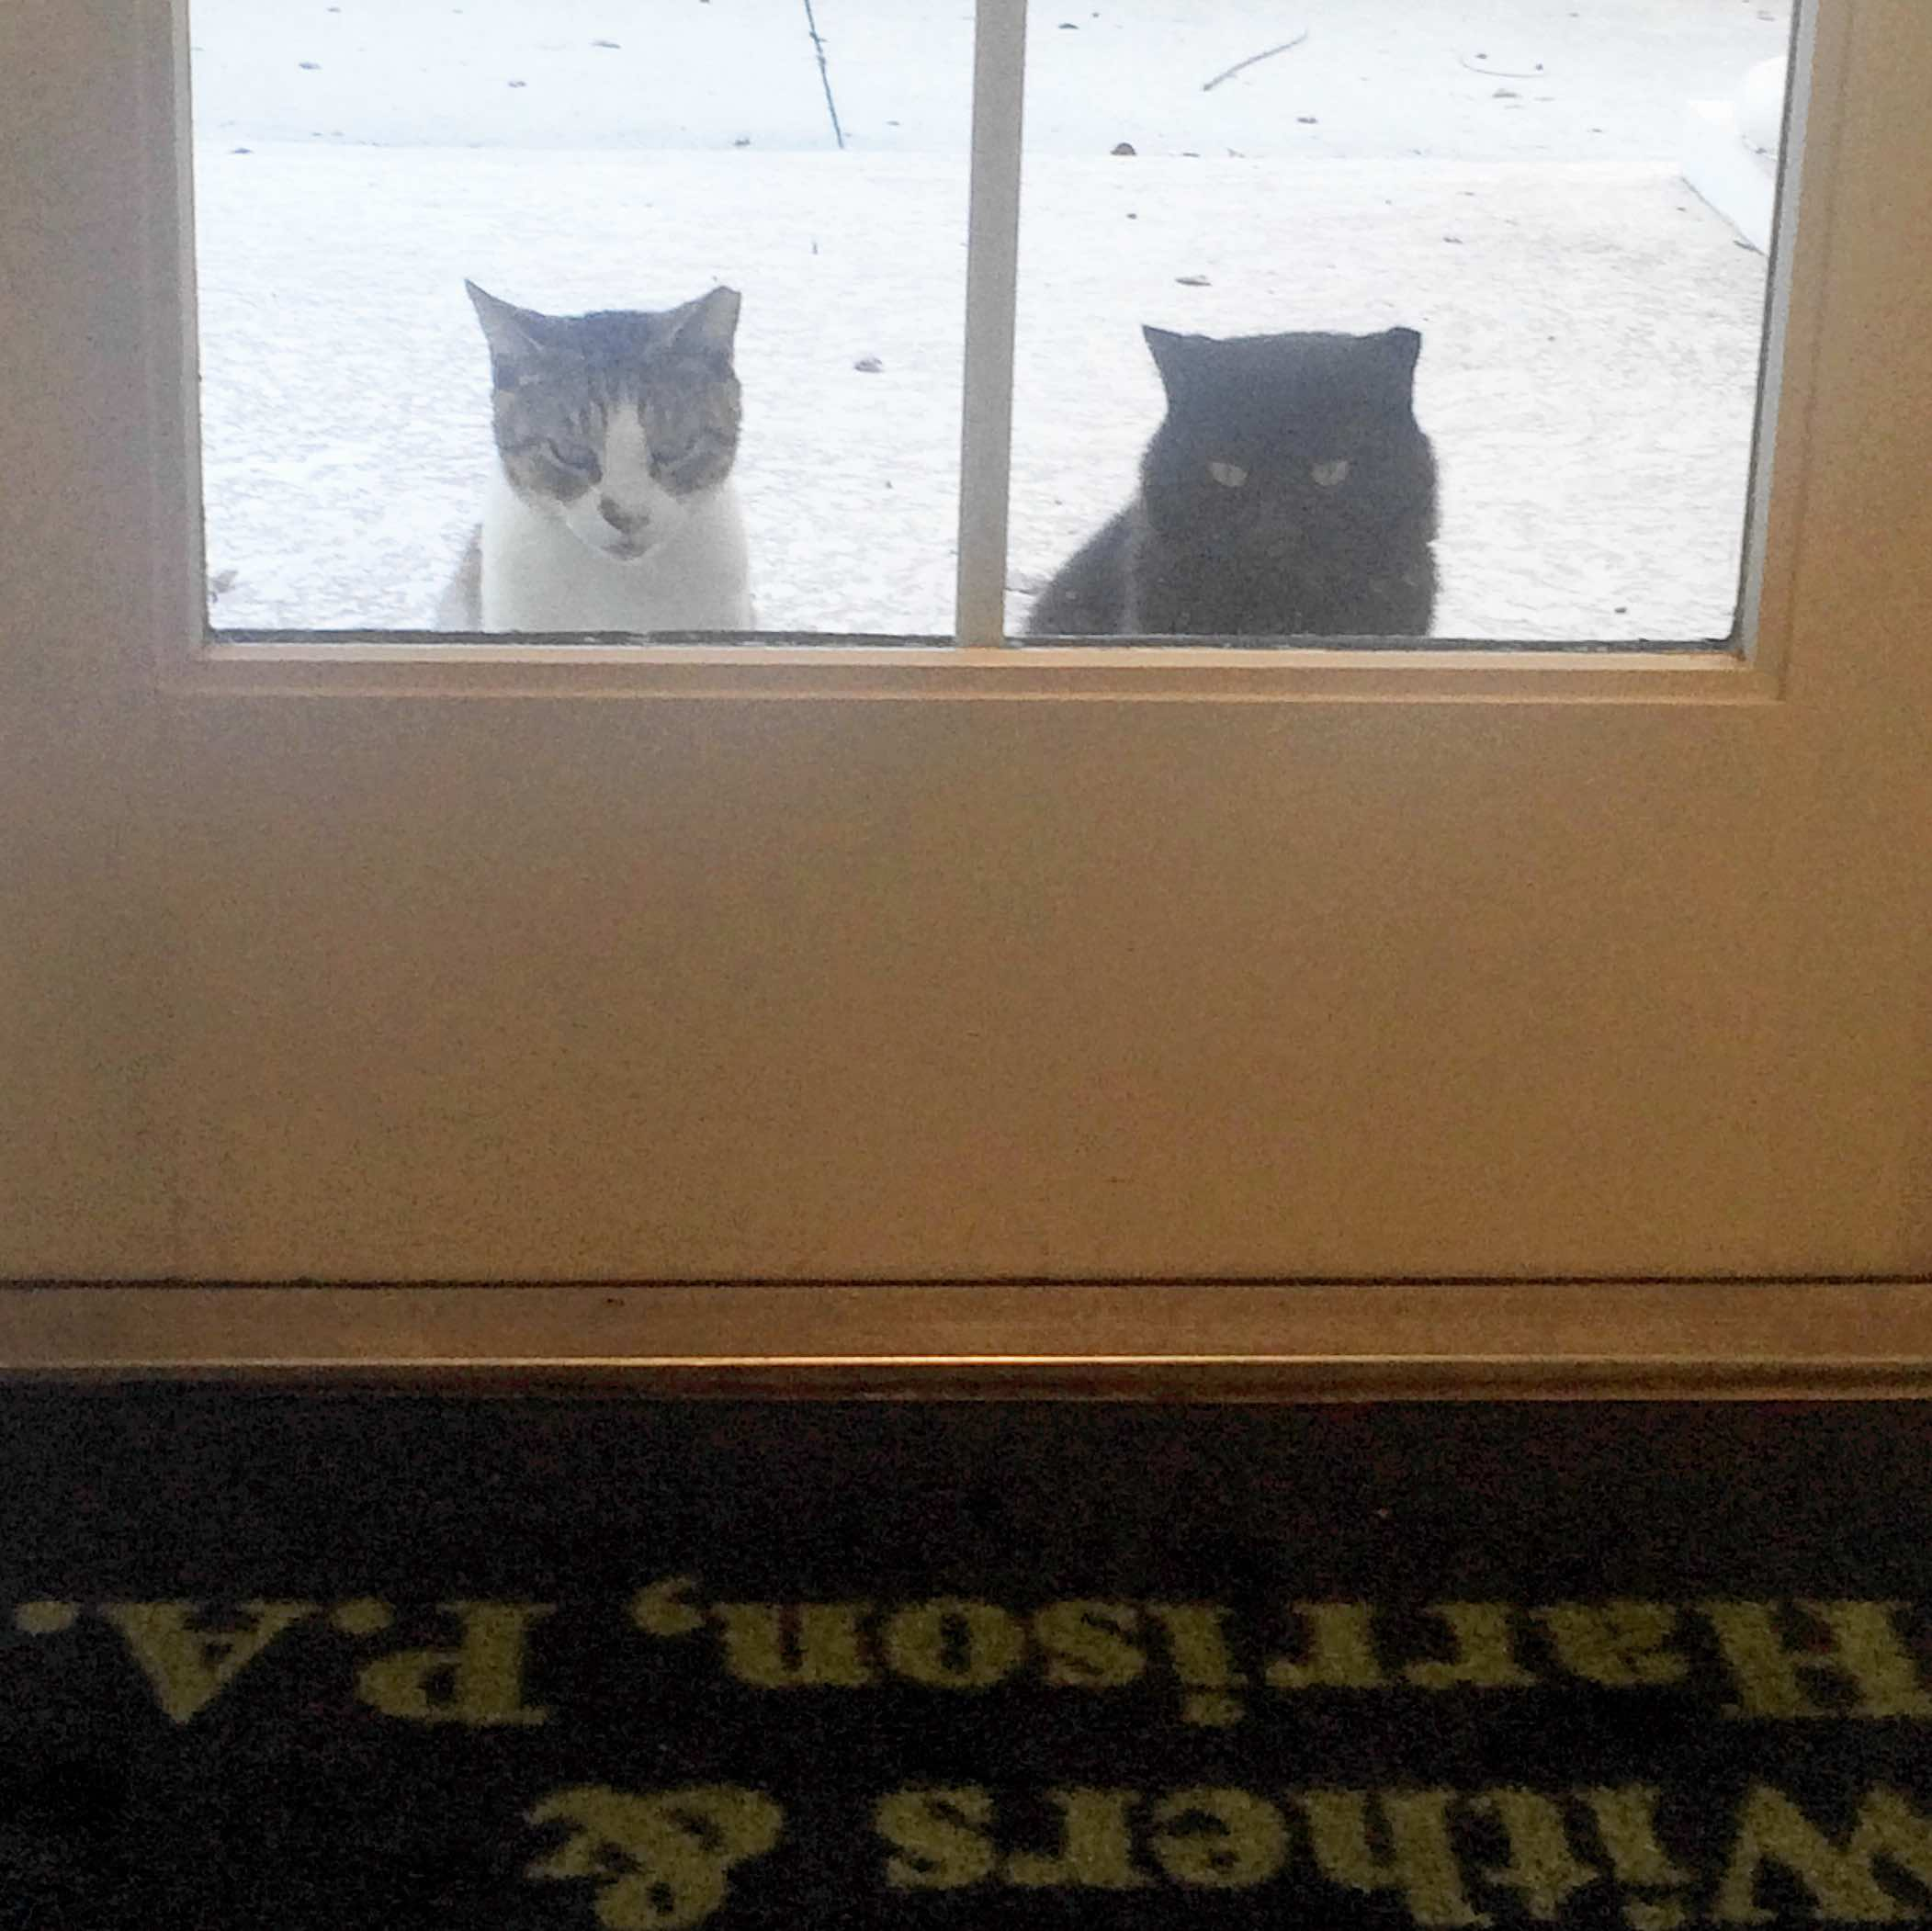 cats at door.jpg